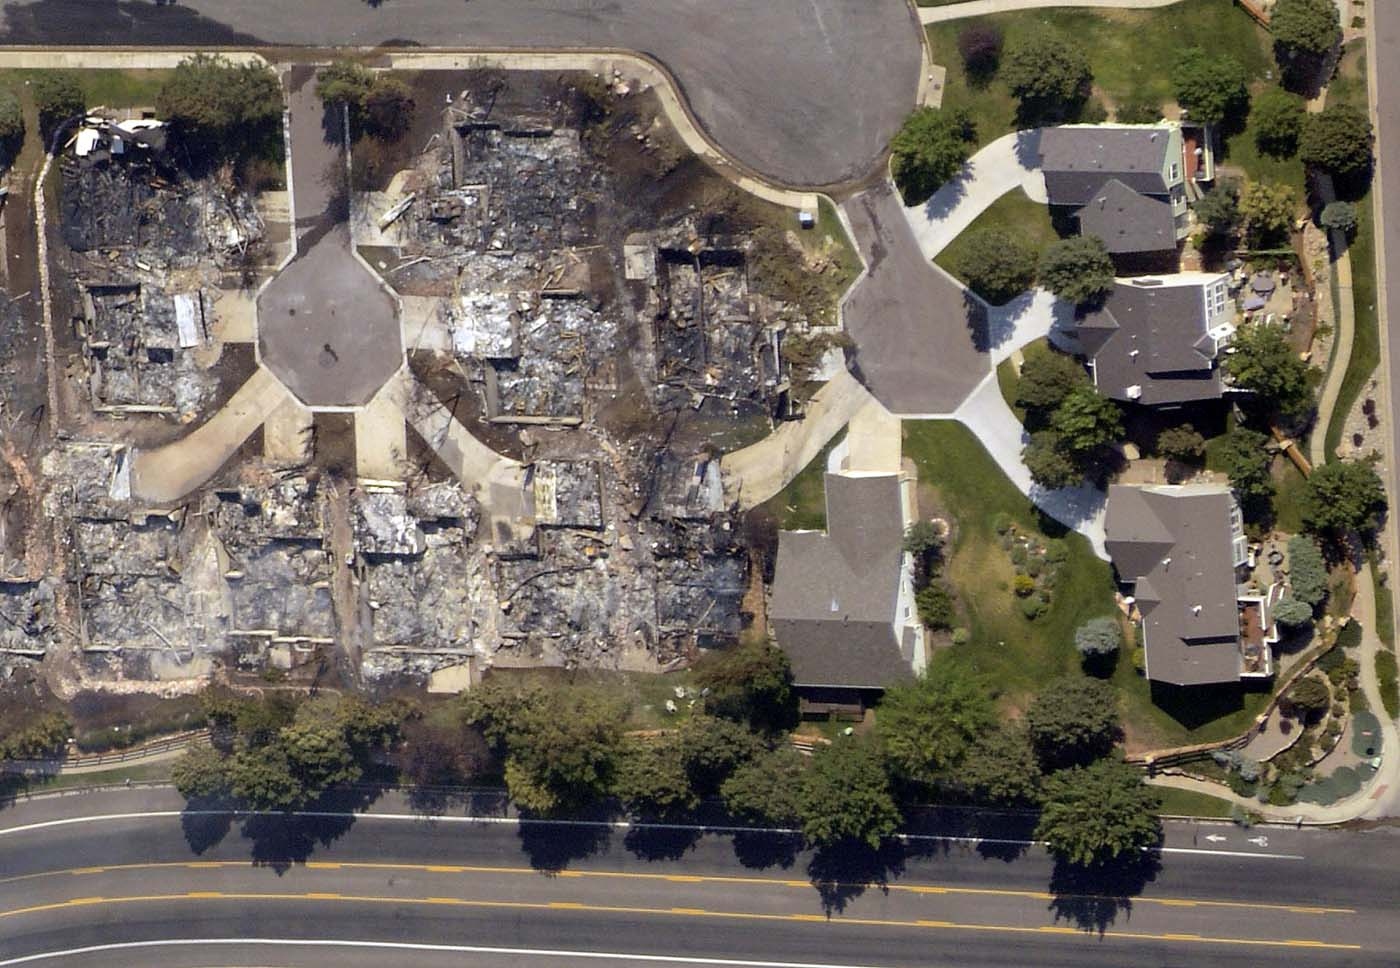 JUNE 28: An aerial view shows homes destroyed by the Waldo Canyon fire in Colorado Springs, Colorado, June 27, 2012. (John Wark/Reuters)